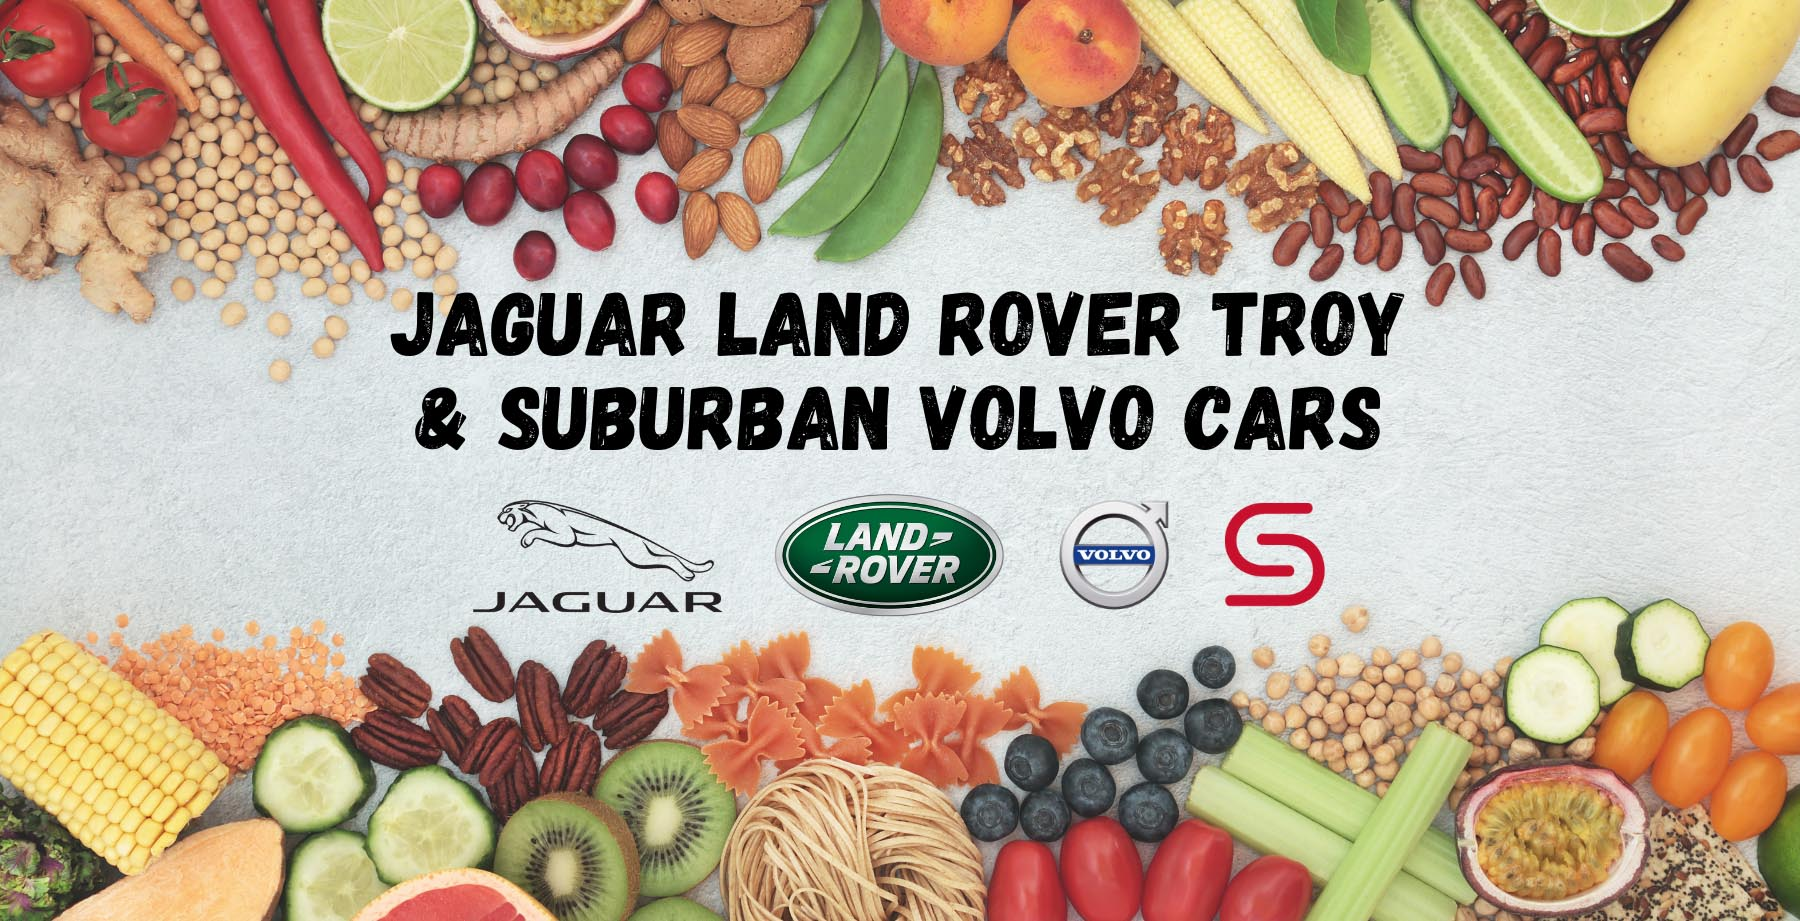 Jaguar Land Rover Troy and Suburban Volvo Cars